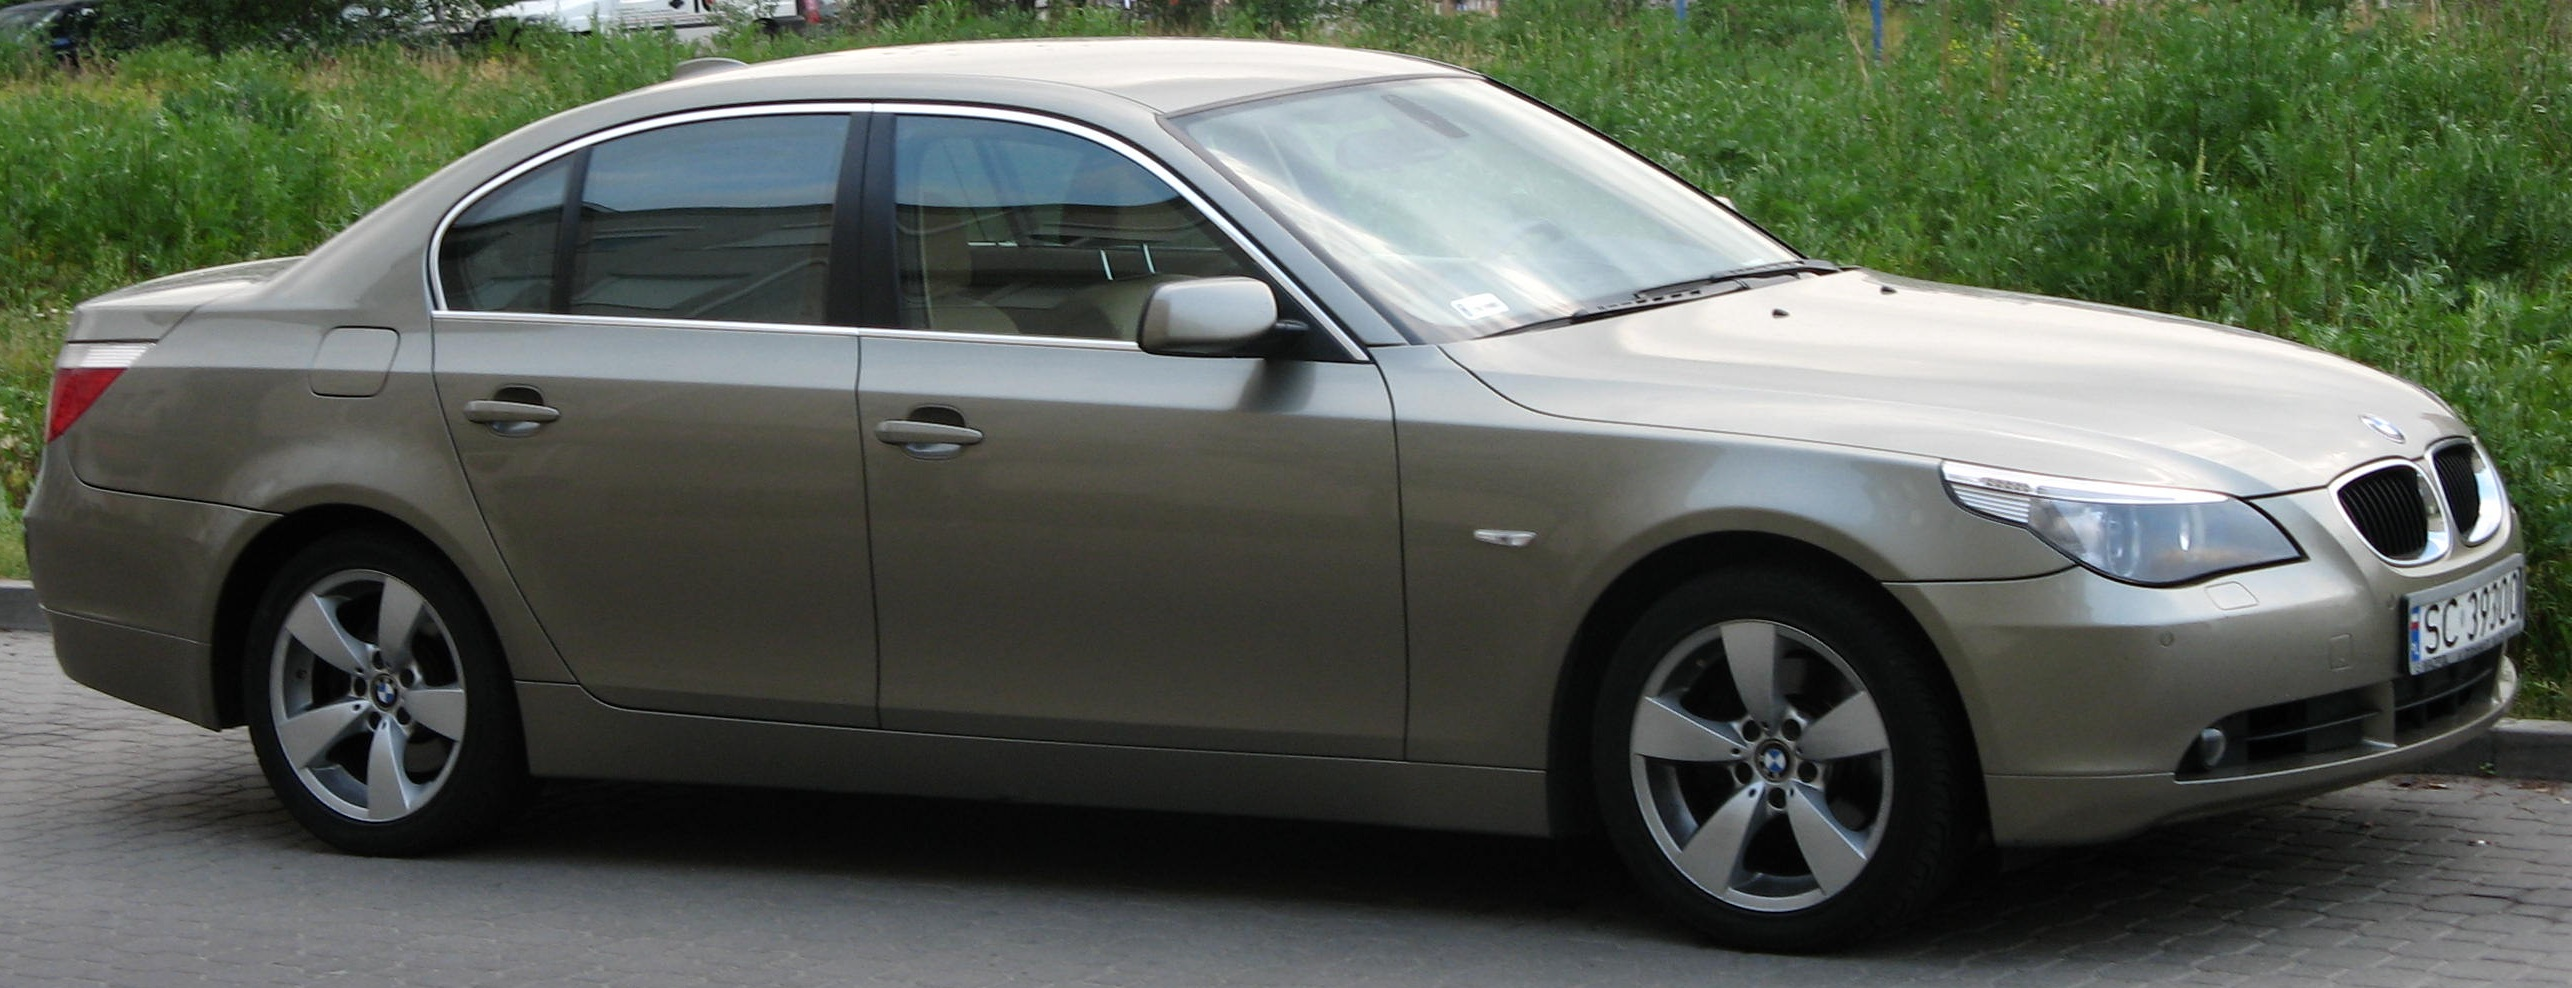 File:BMW E60.jpg - Wikipedia